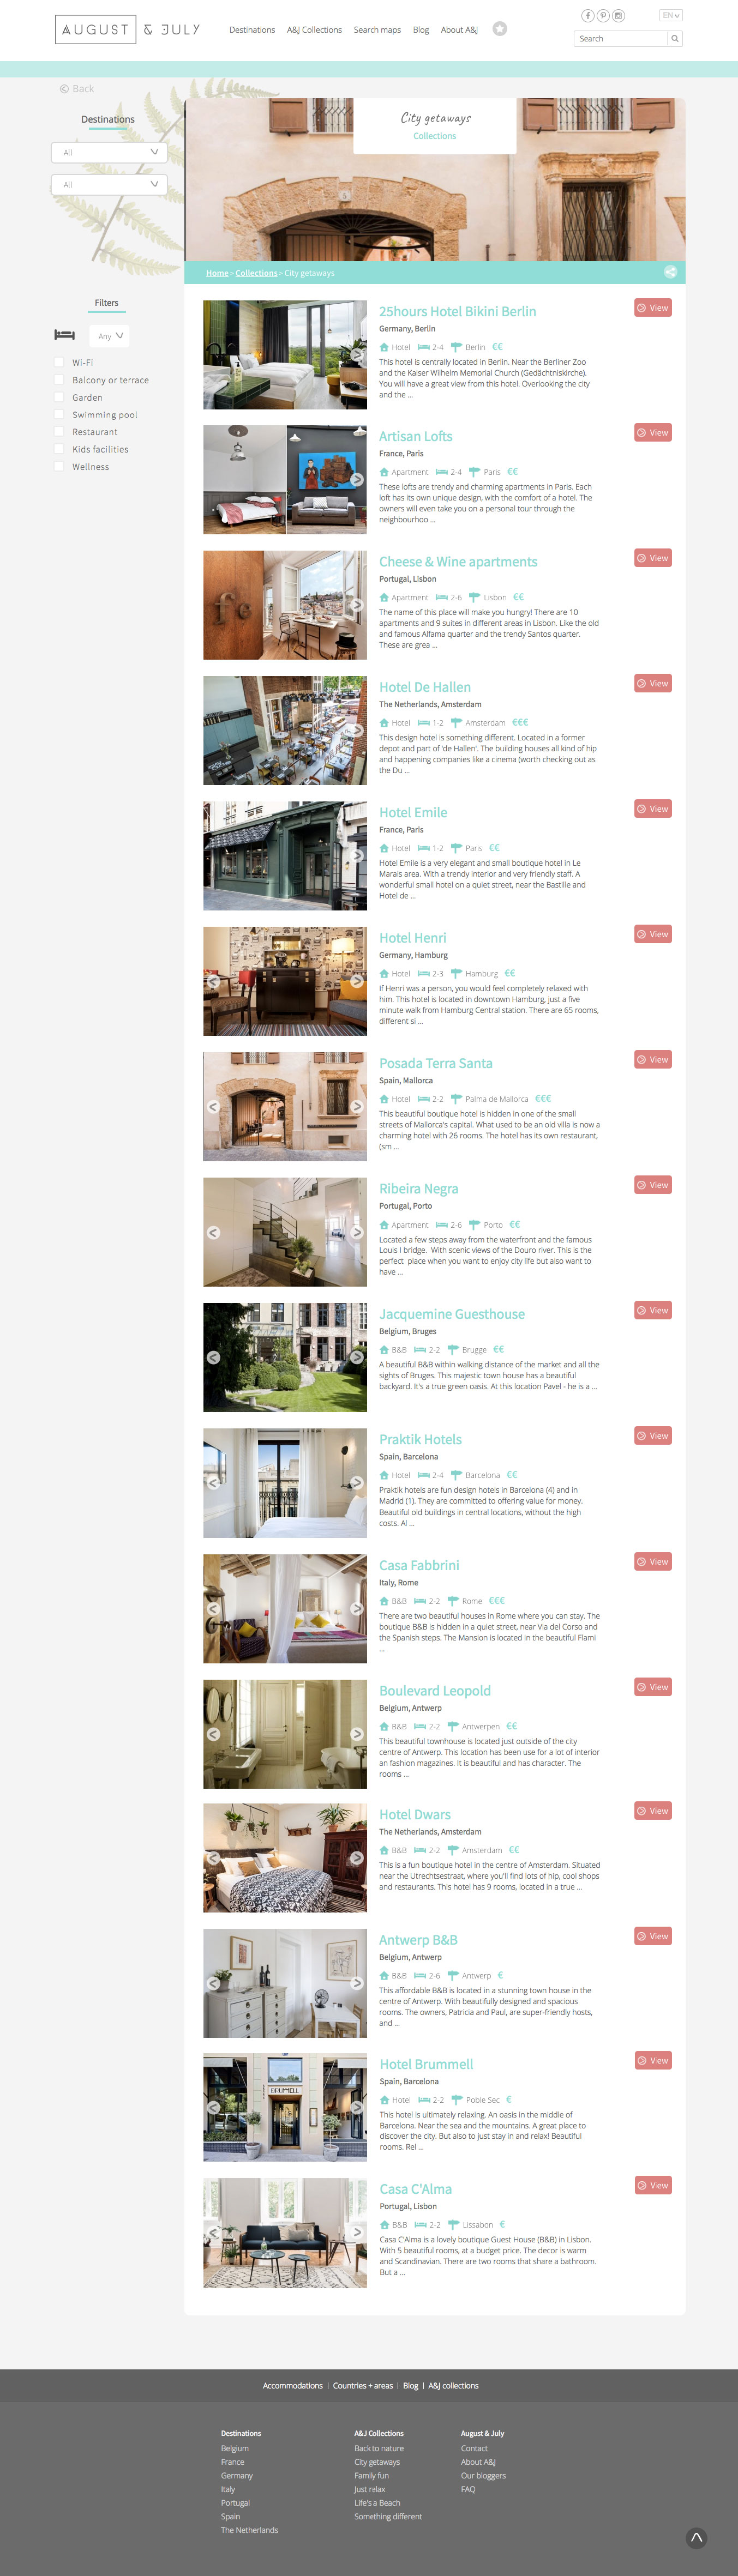 August & July - Travel project - Web-design - Merehead Development